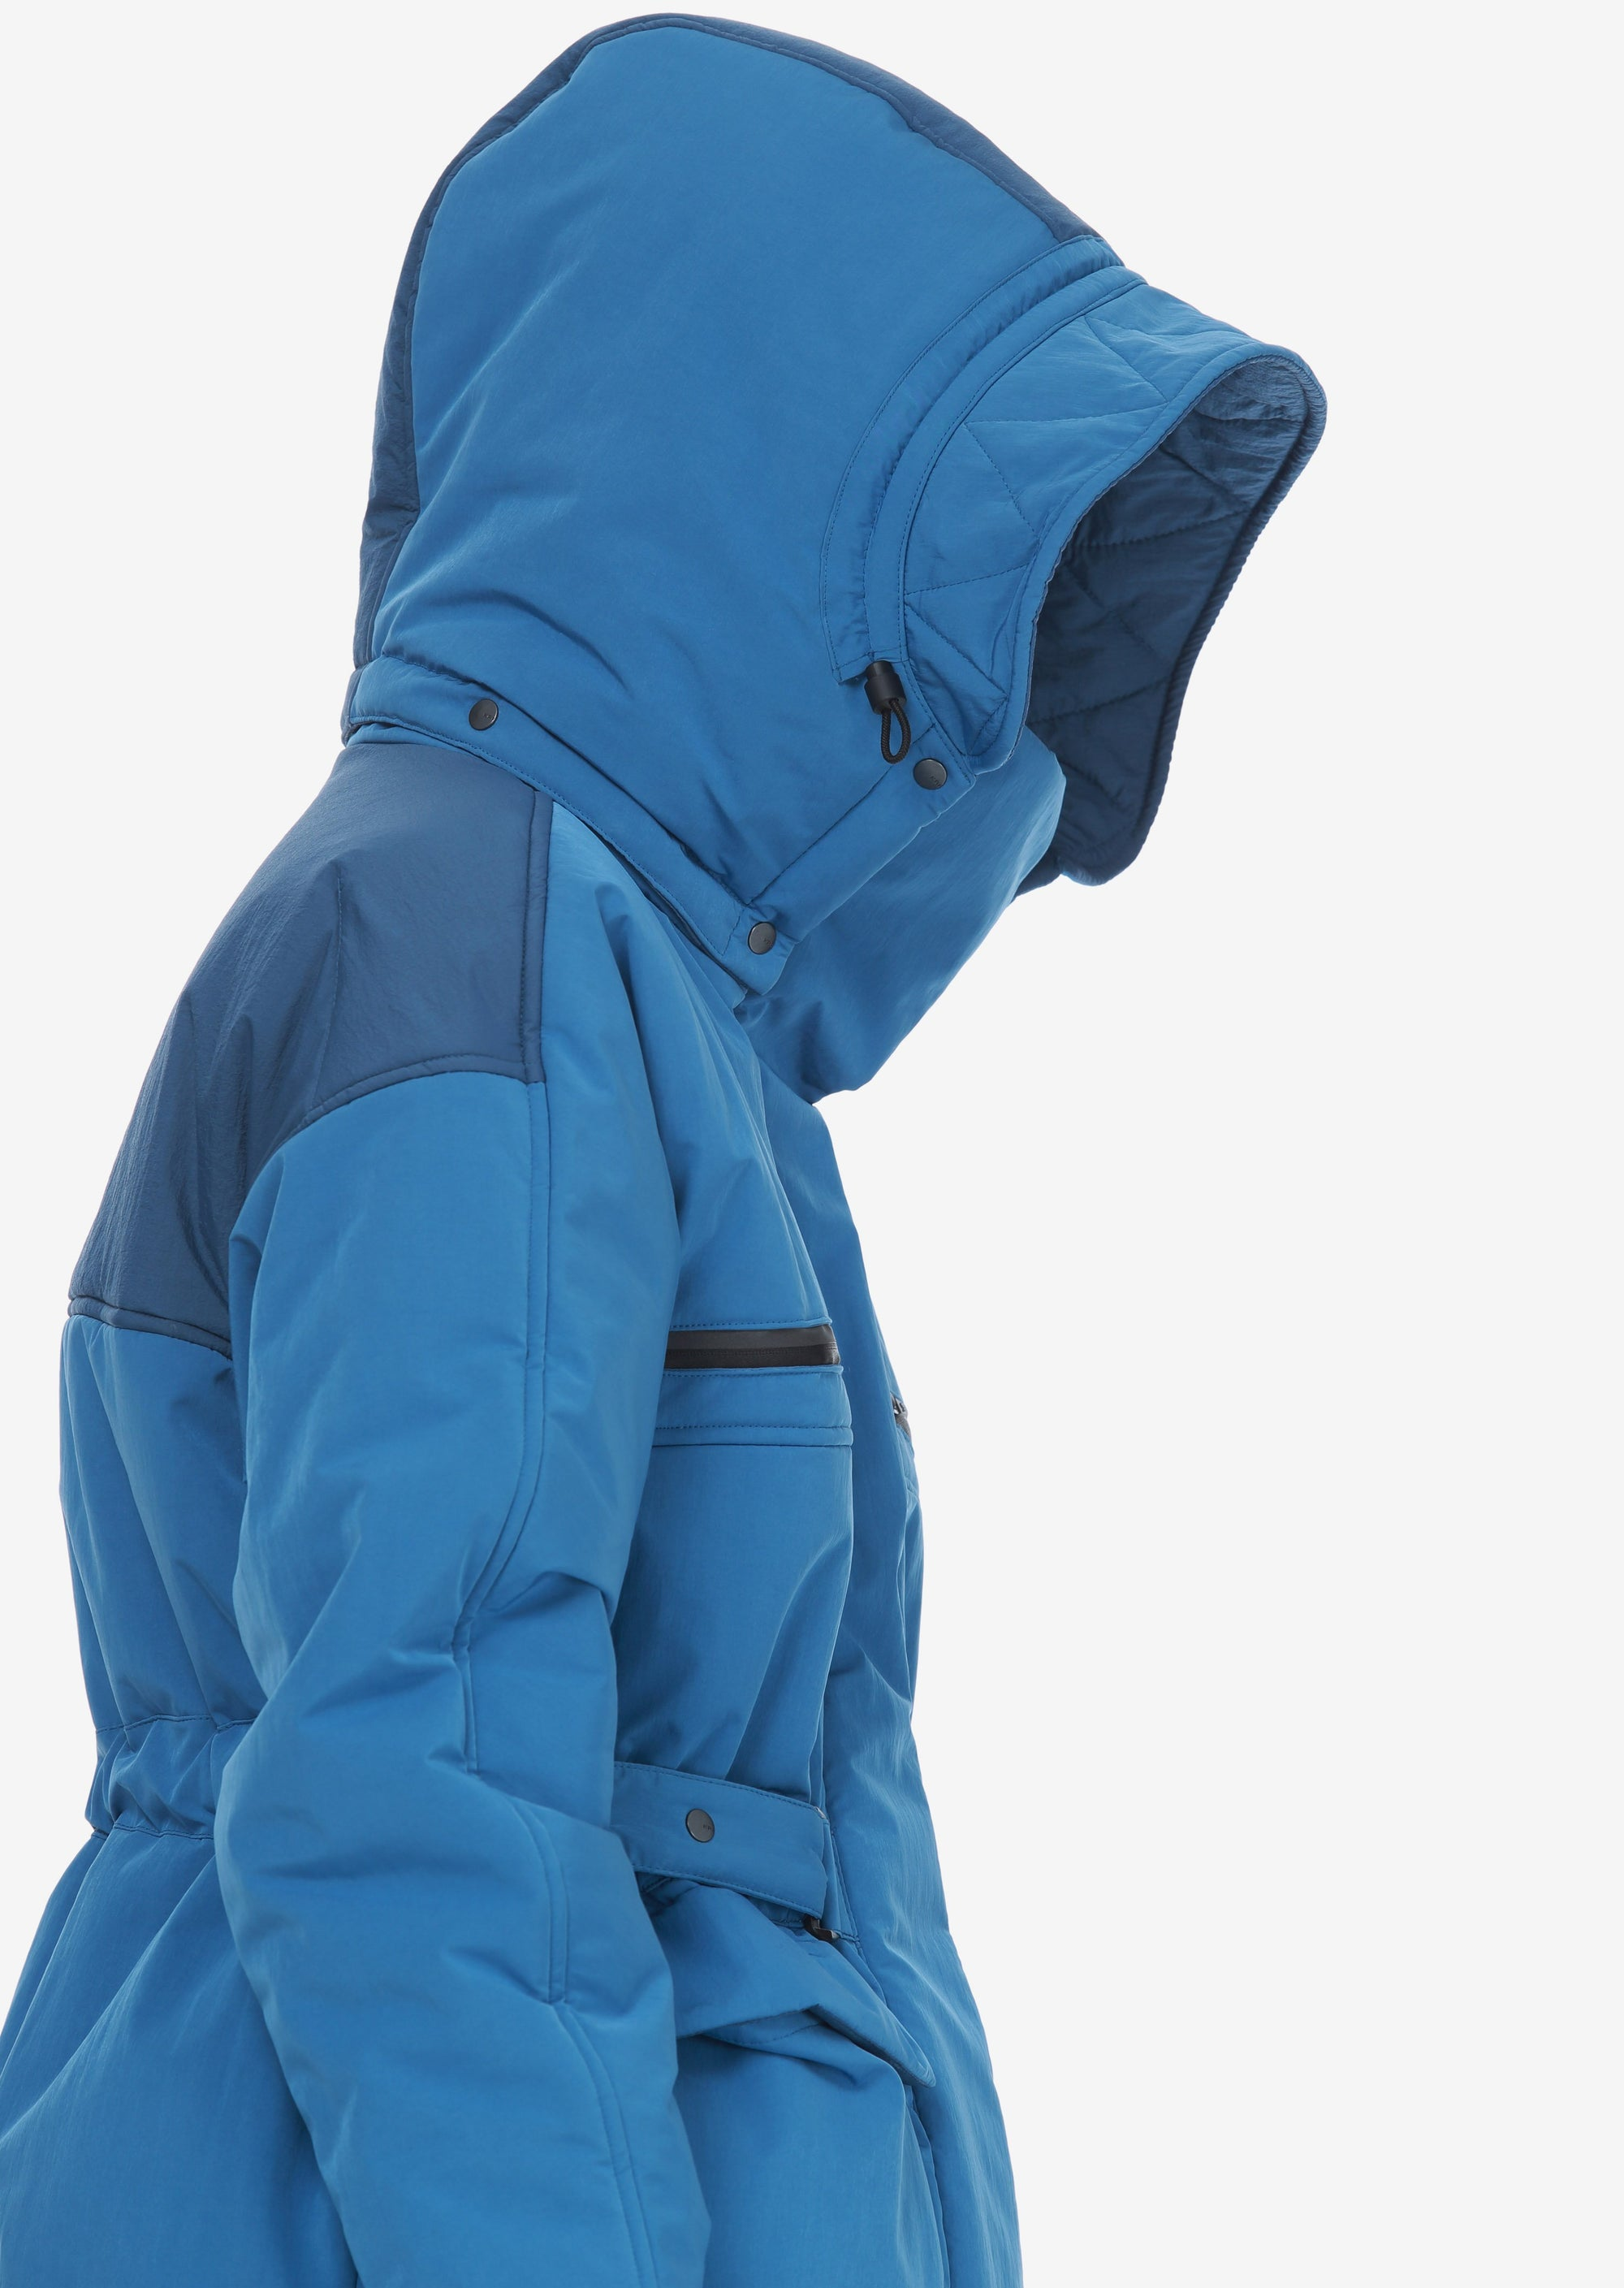 Removable Hood Padded Jacket Qw259-6 LARSEN